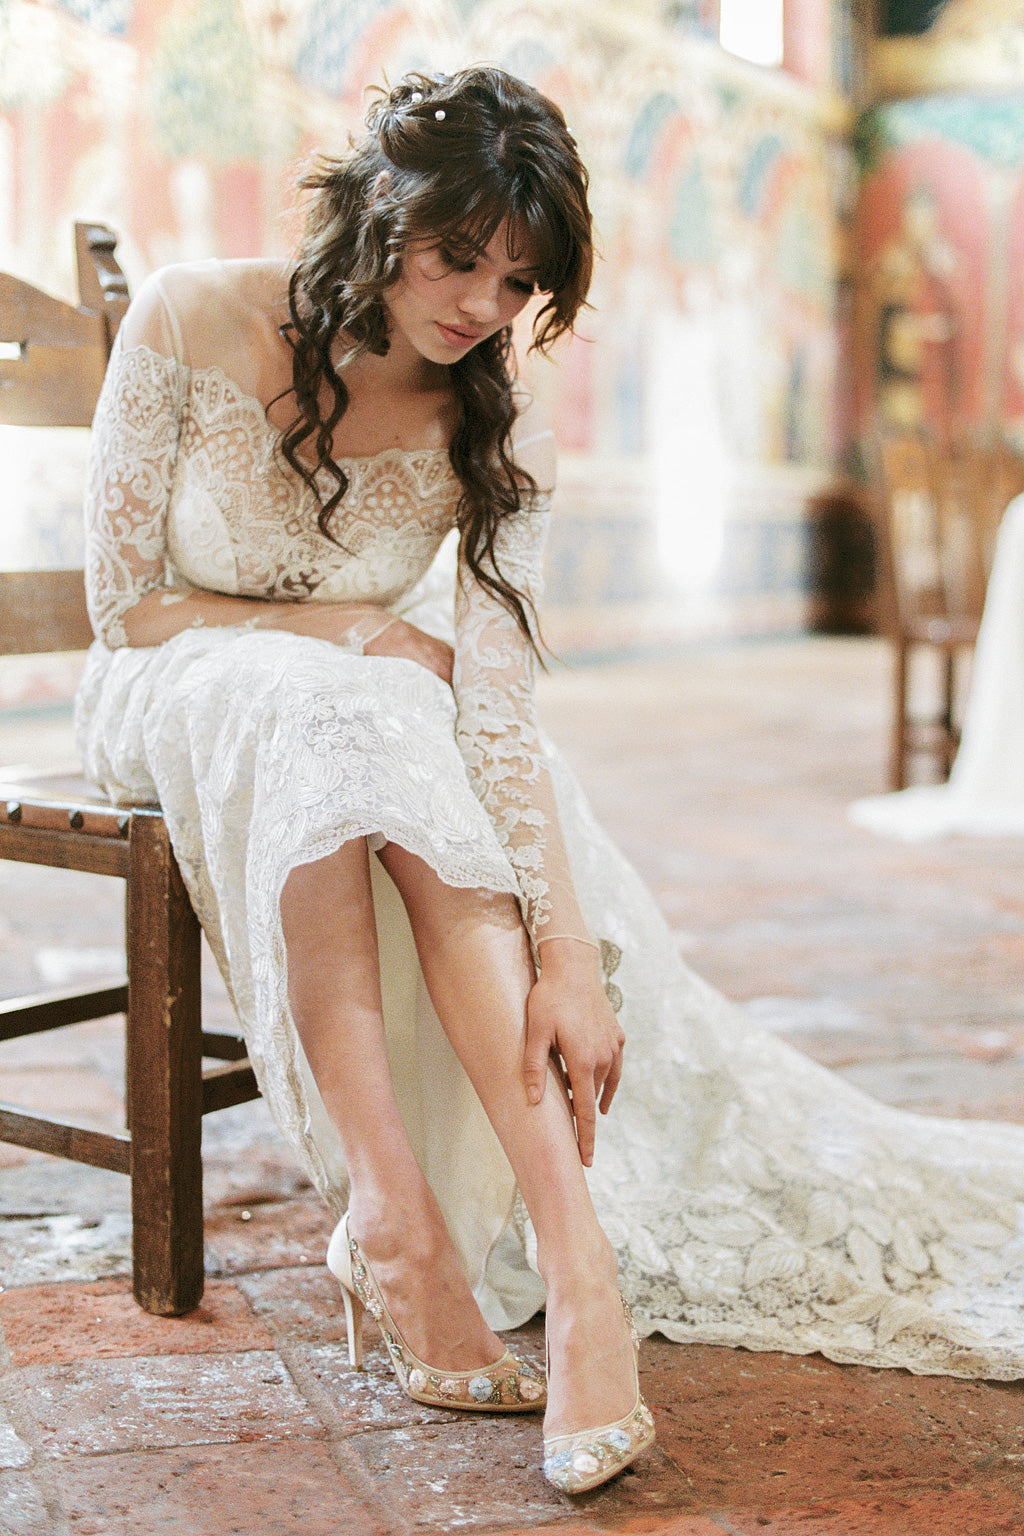 Bella Belle featured Shoes Claire Pettibone Voyage Wedding Dress